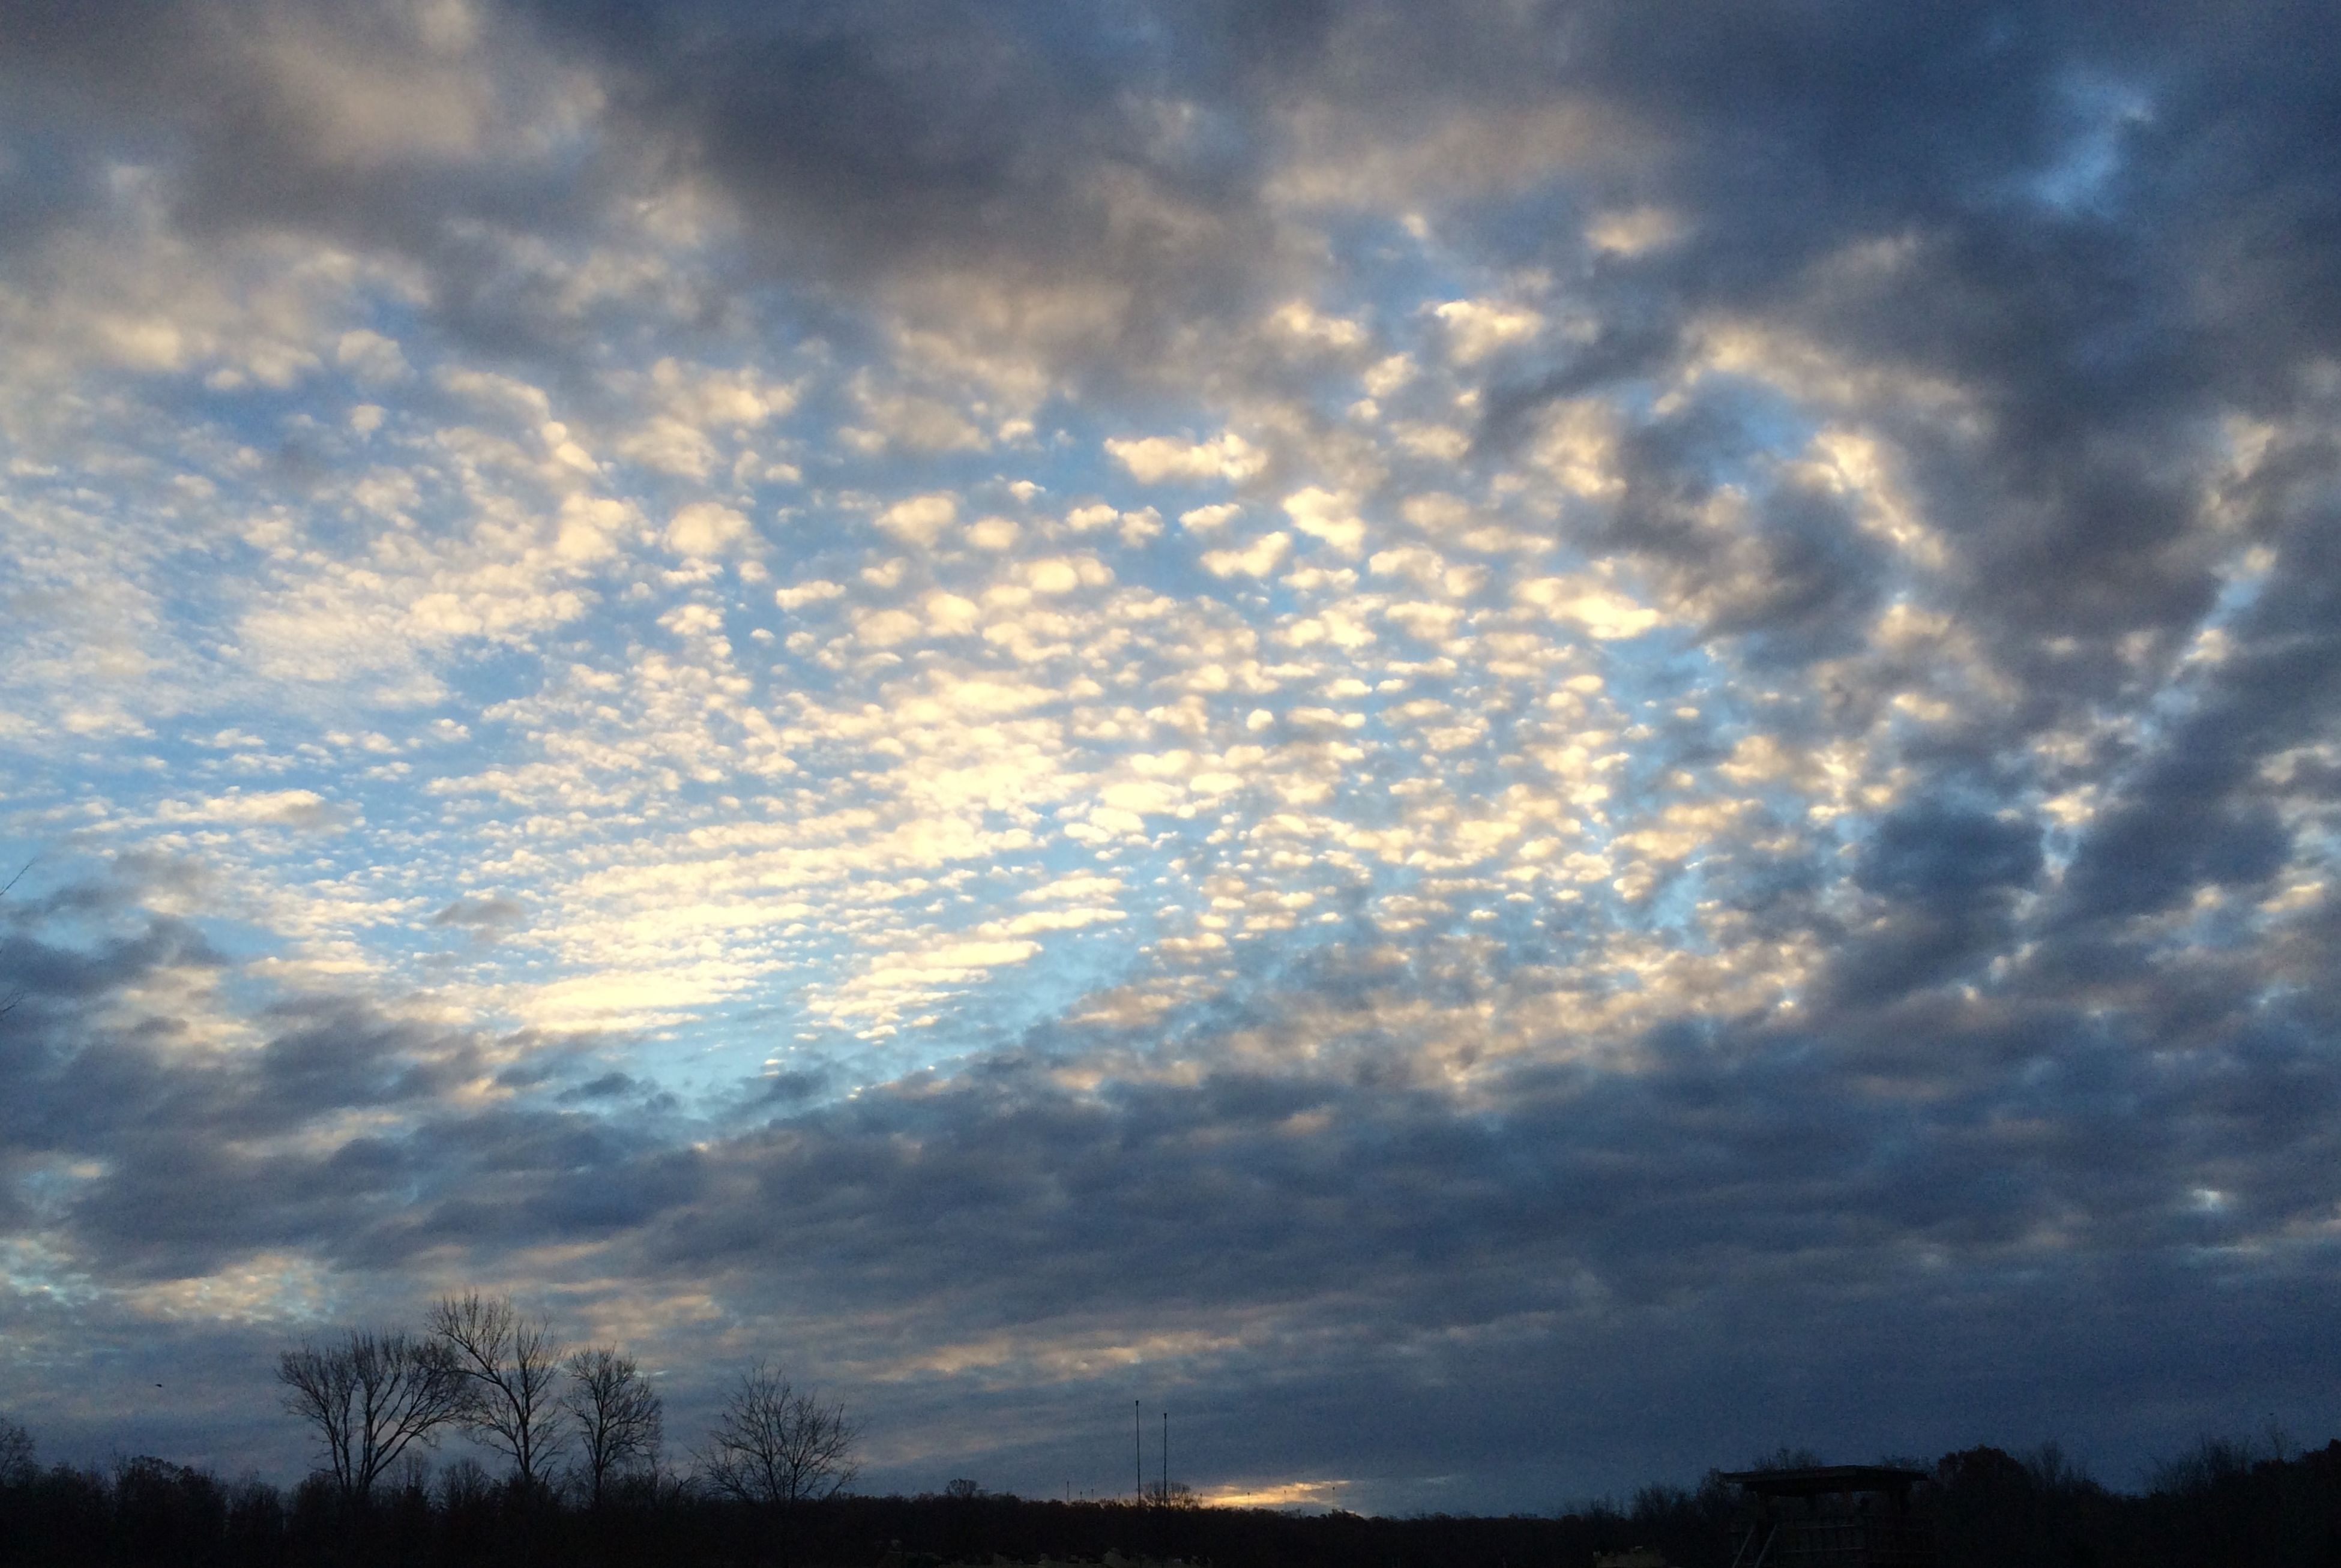 sky, silhouette, low angle view, cloud - sky, tranquility, beauty in nature, cloudy, scenics, tranquil scene, nature, sunset, cloud, tree, weather, overcast, dramatic sky, cloudscape, dusk, idyllic, outdoors